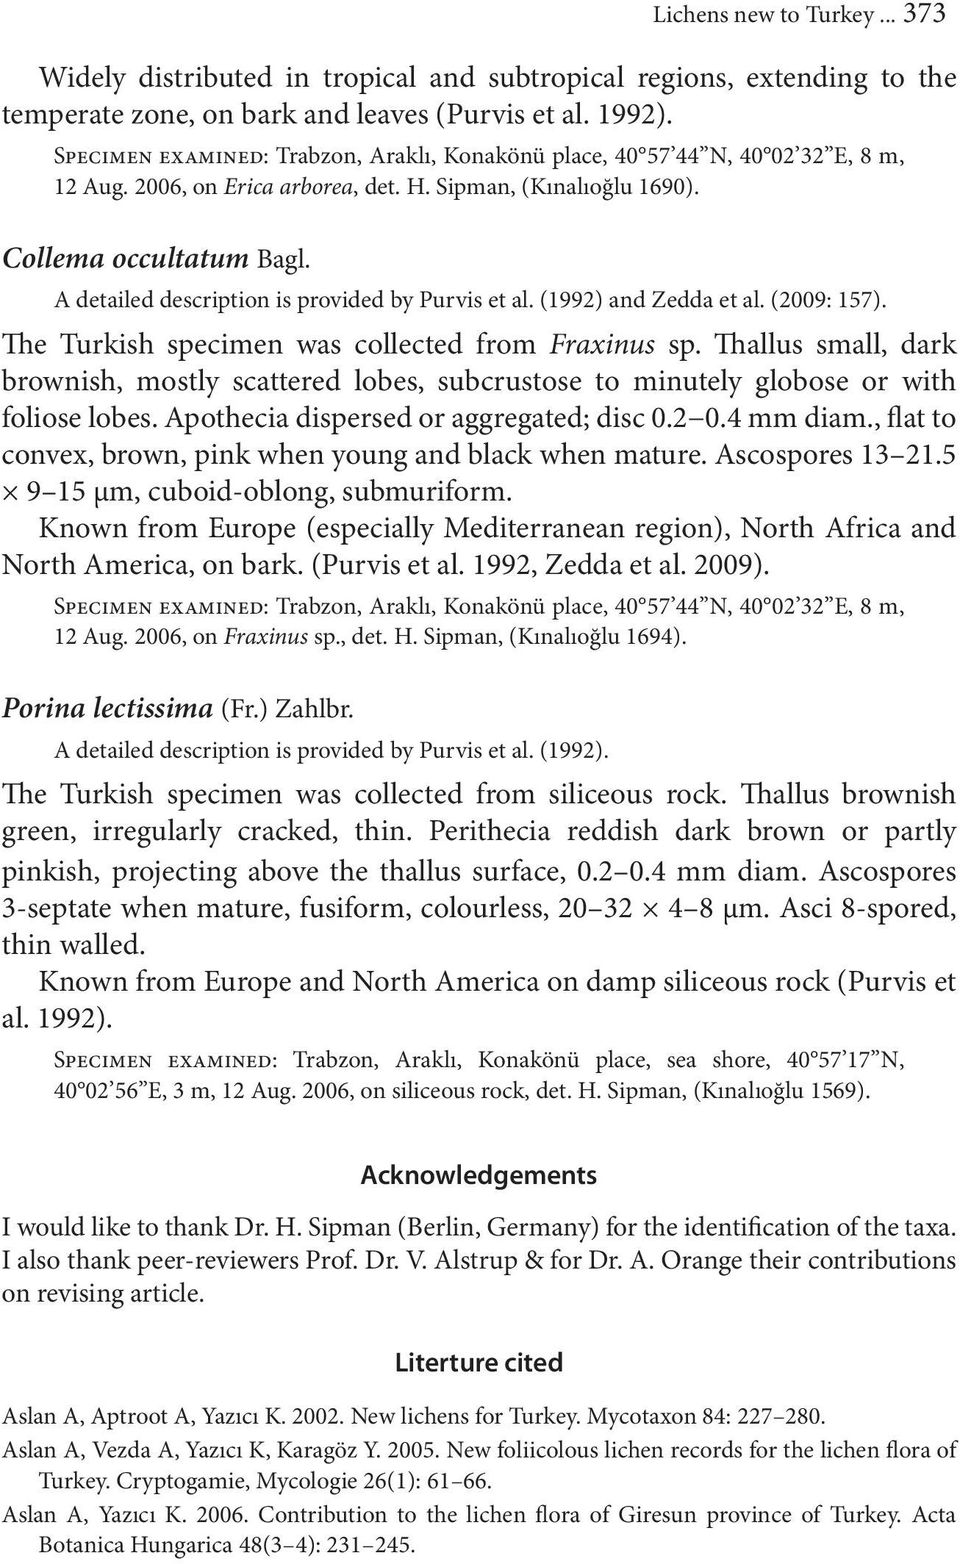 A detailed description is provided by Purvis et al. (1992) and Zedda et al. (2009: 157). The Turkish specimen was collected from Fraxinus sp.